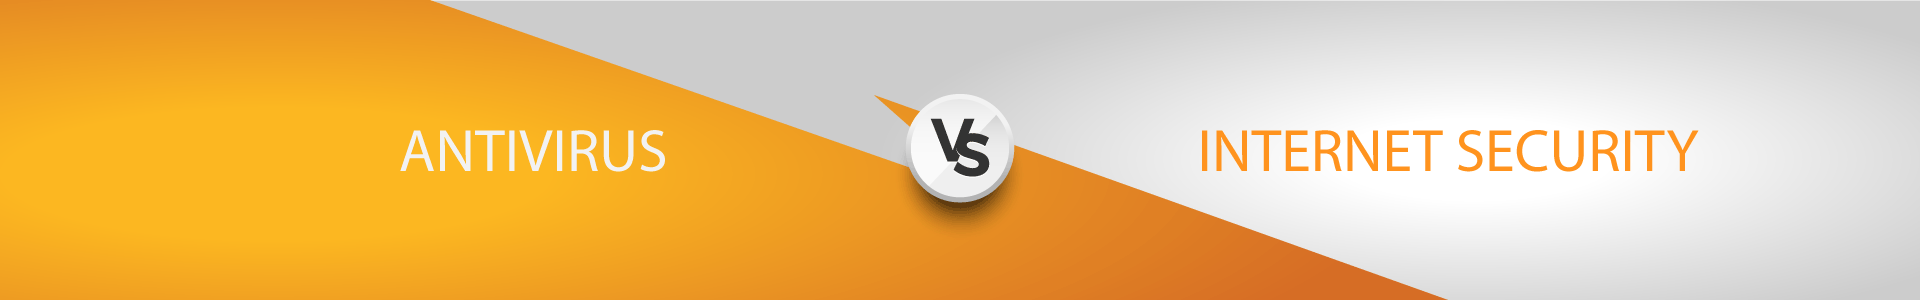 INTERNET SECURITY AND ANTIVIRUS: ARE THEY THE SAME?